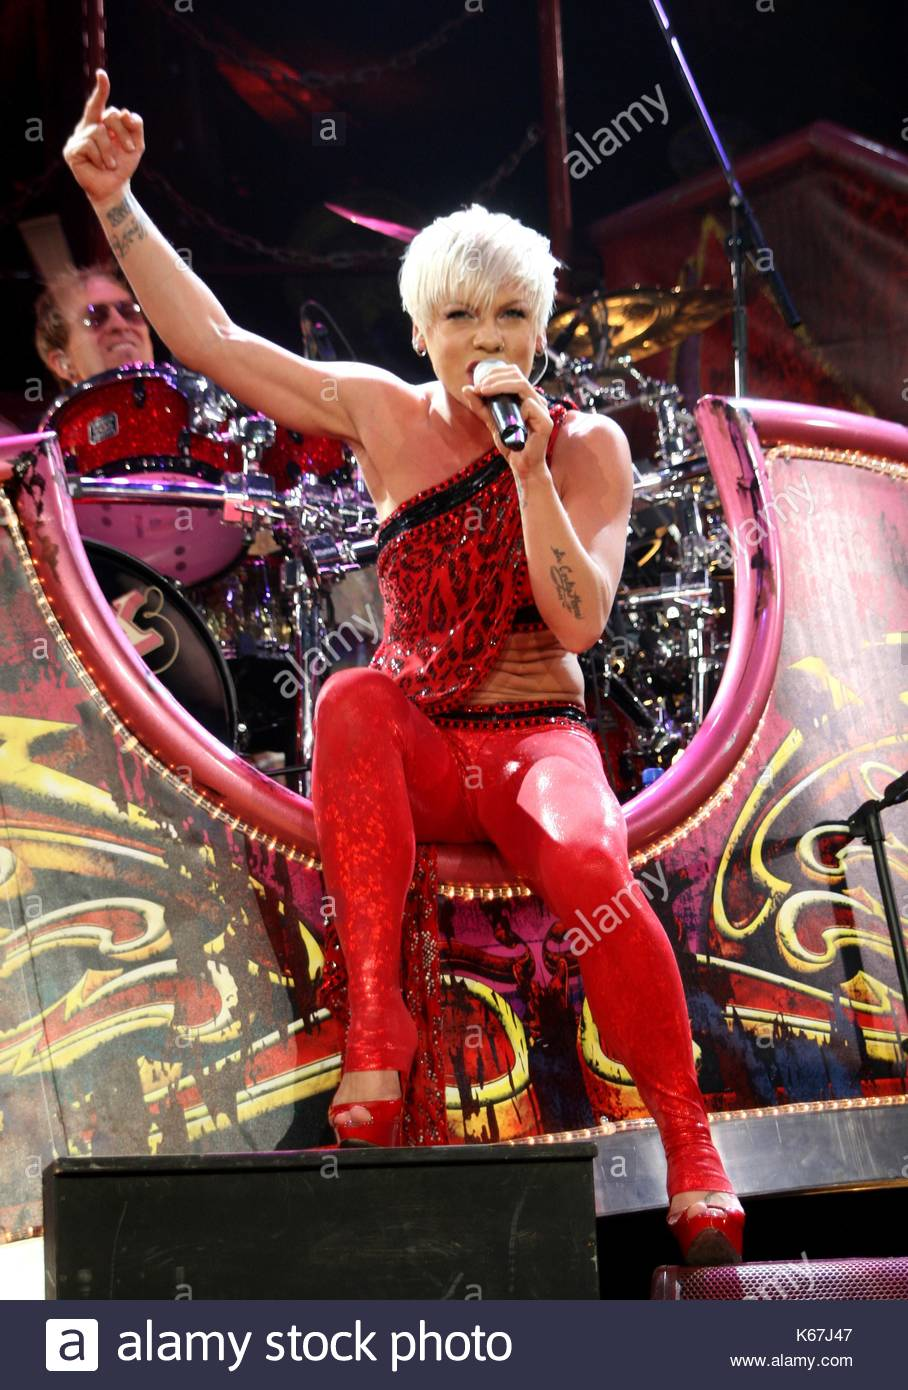 So What Does 20g Of Protein Look Like: Pink. P!nk Recently Scored Her Second UK No.1 With Her